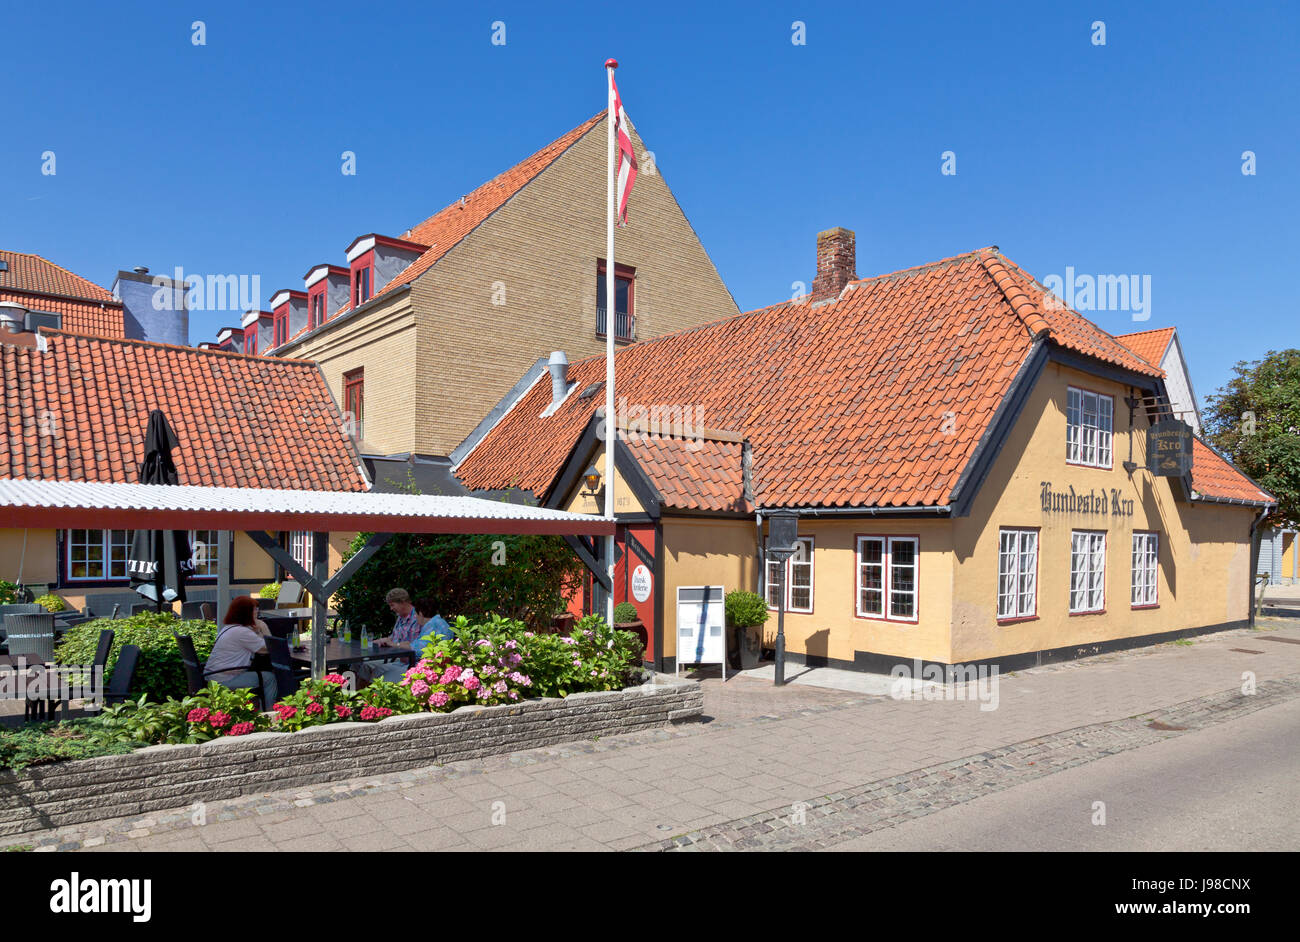 Hundested Inn and Hotel, Hundested Kro og Hotel, in Hundested n North Sealand - Stock Image